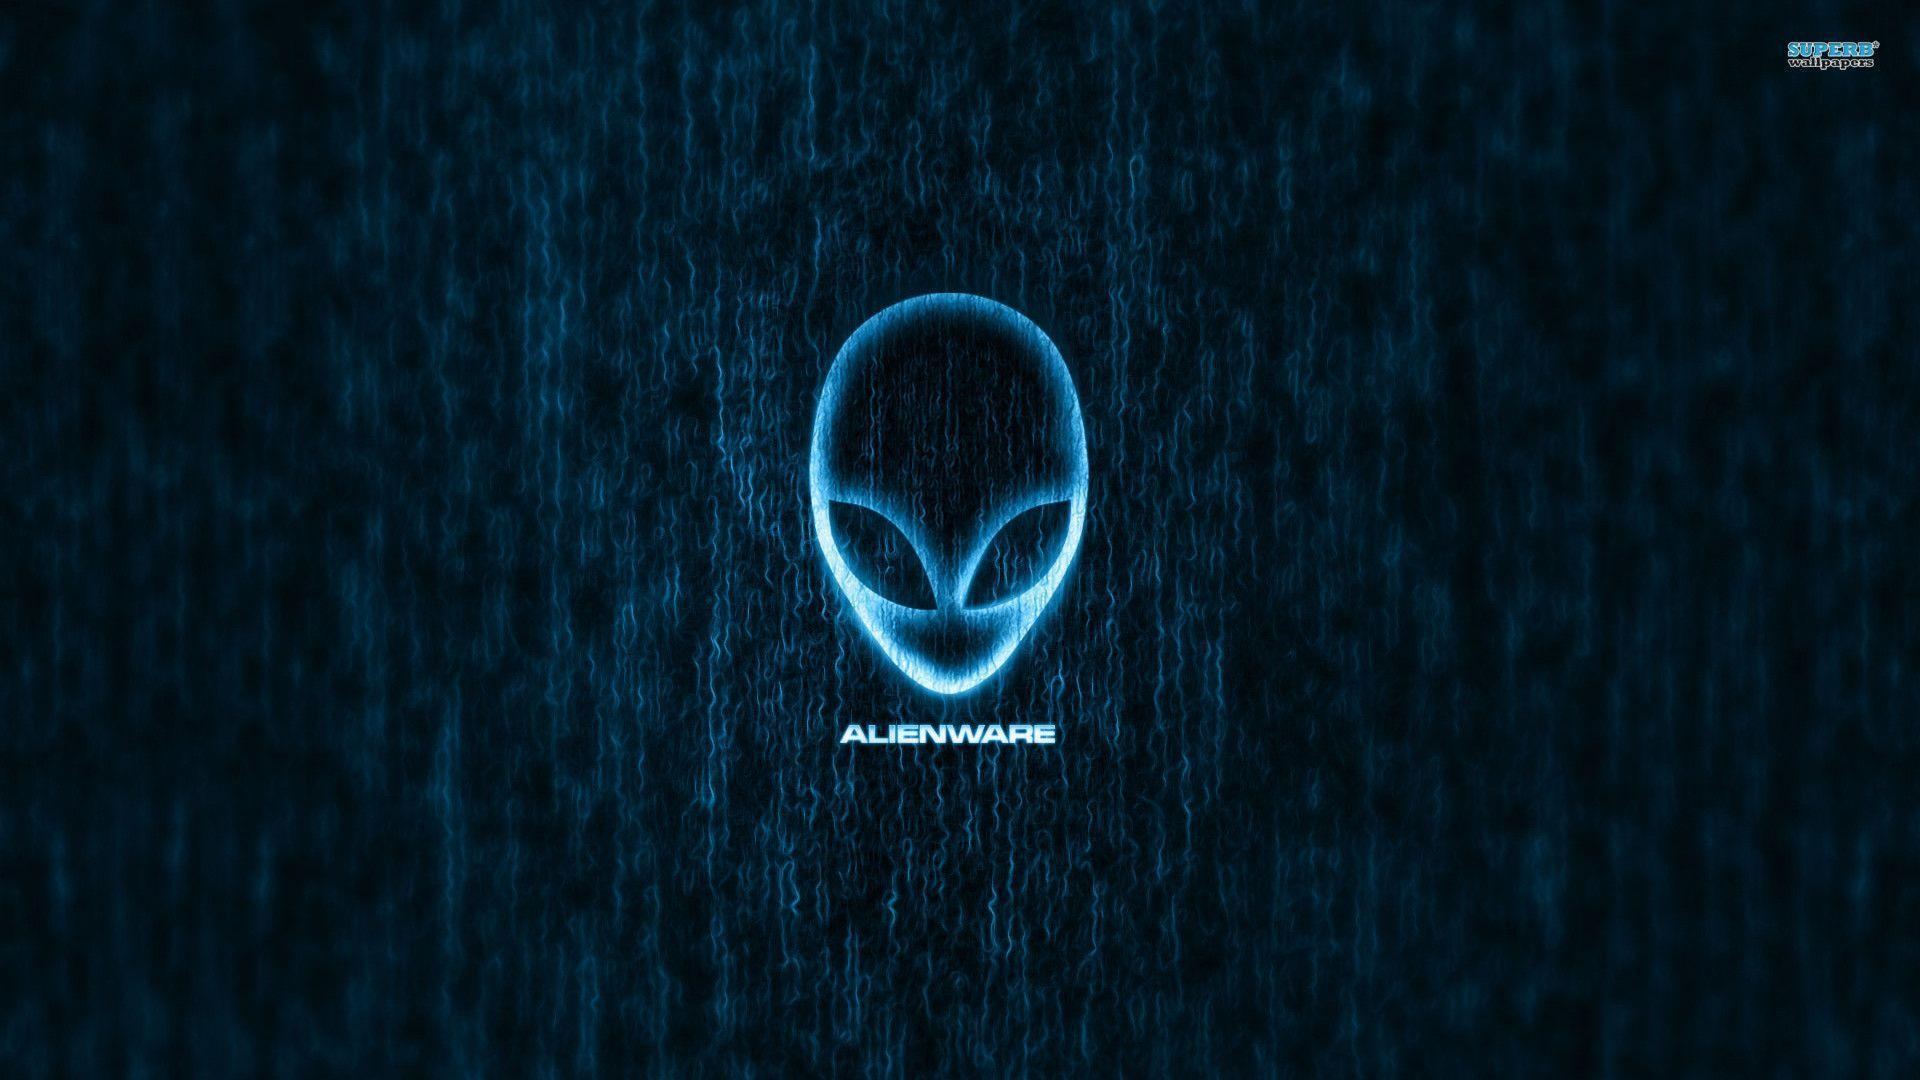 alienware wallpaper hd 4k